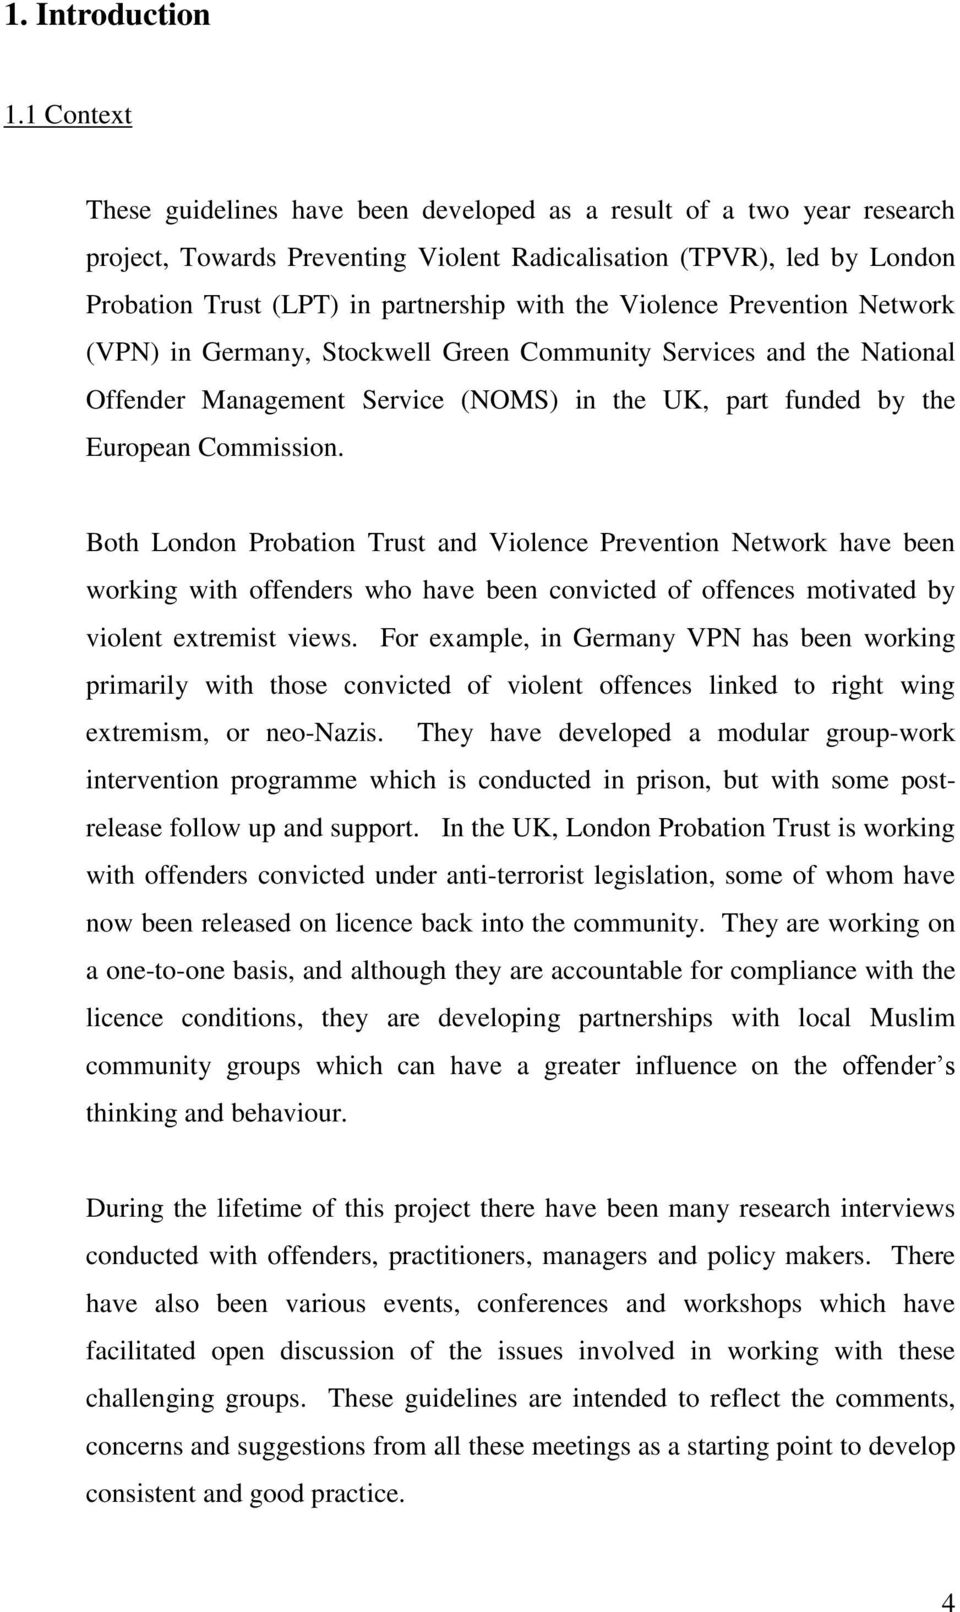 the Violence Prevention Network (VPN) in Germany, Stockwell Green Community Services and the National Offender Management Service (NOMS) in the UK, part funded by the European Commission.